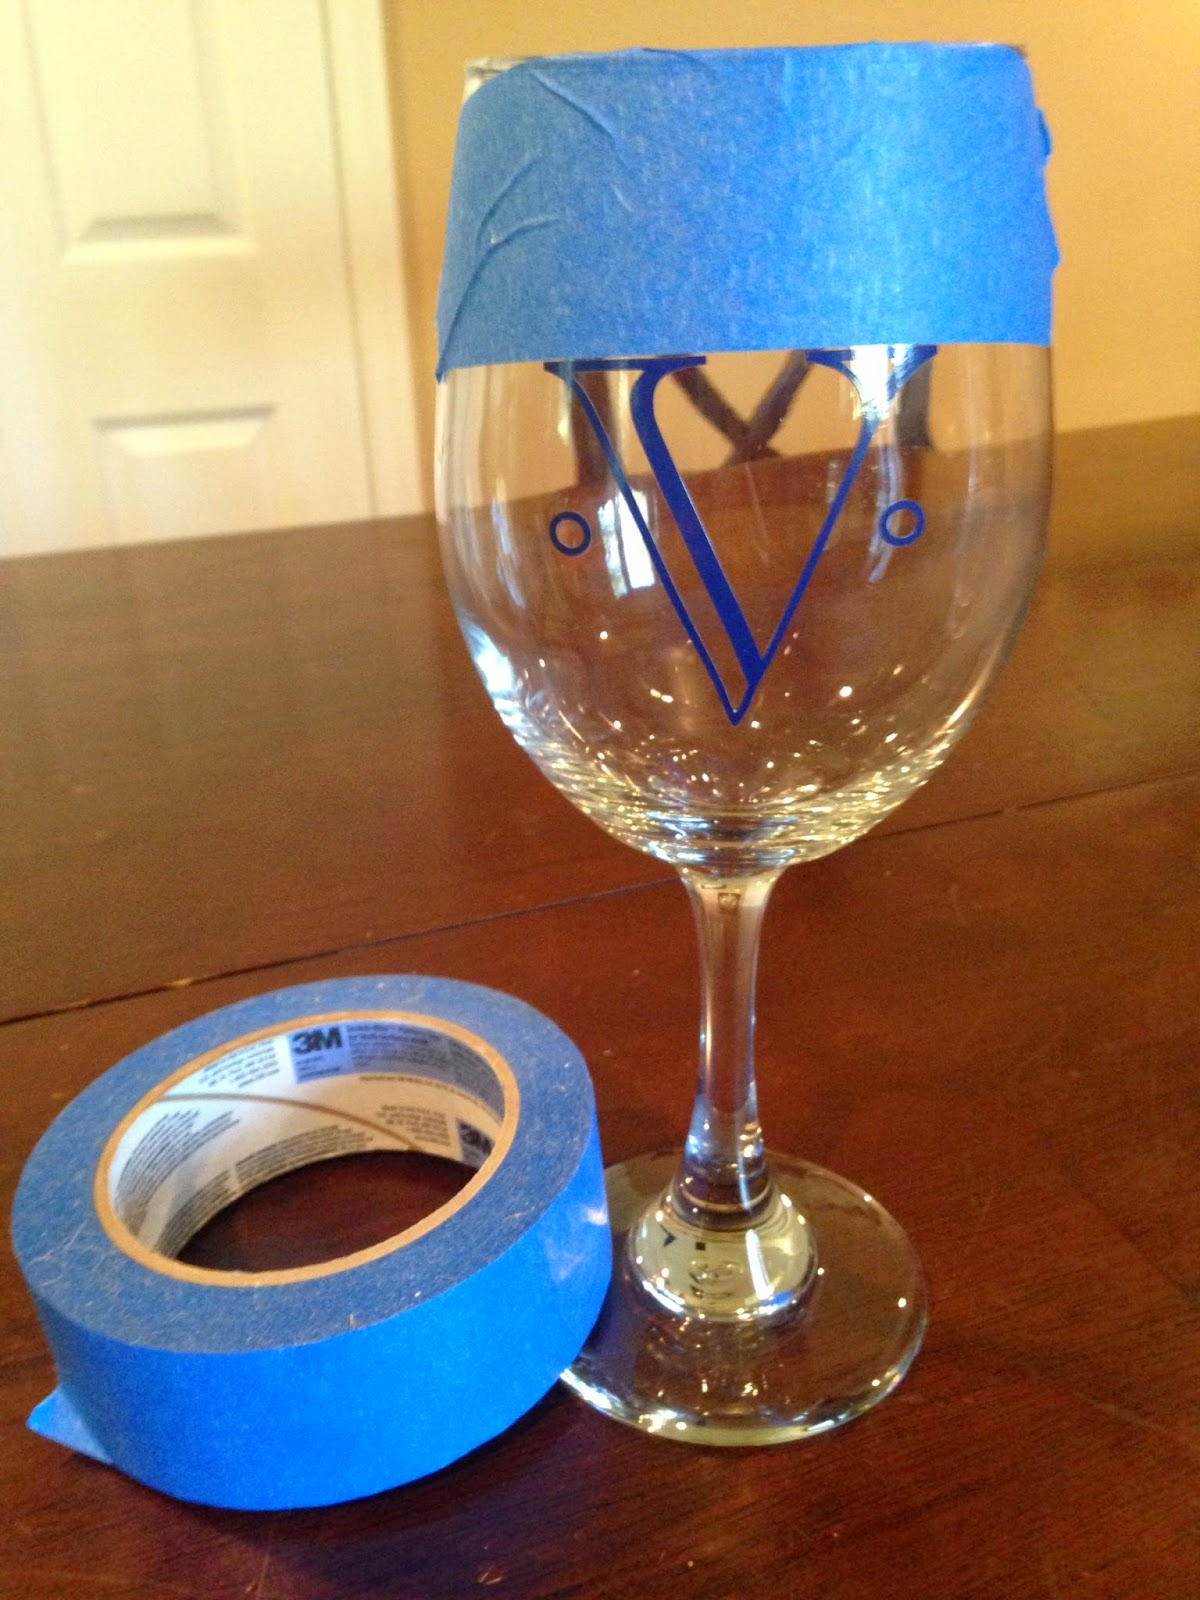 Painters tape, Painter's tape, Silhouette, crafting, wine glass